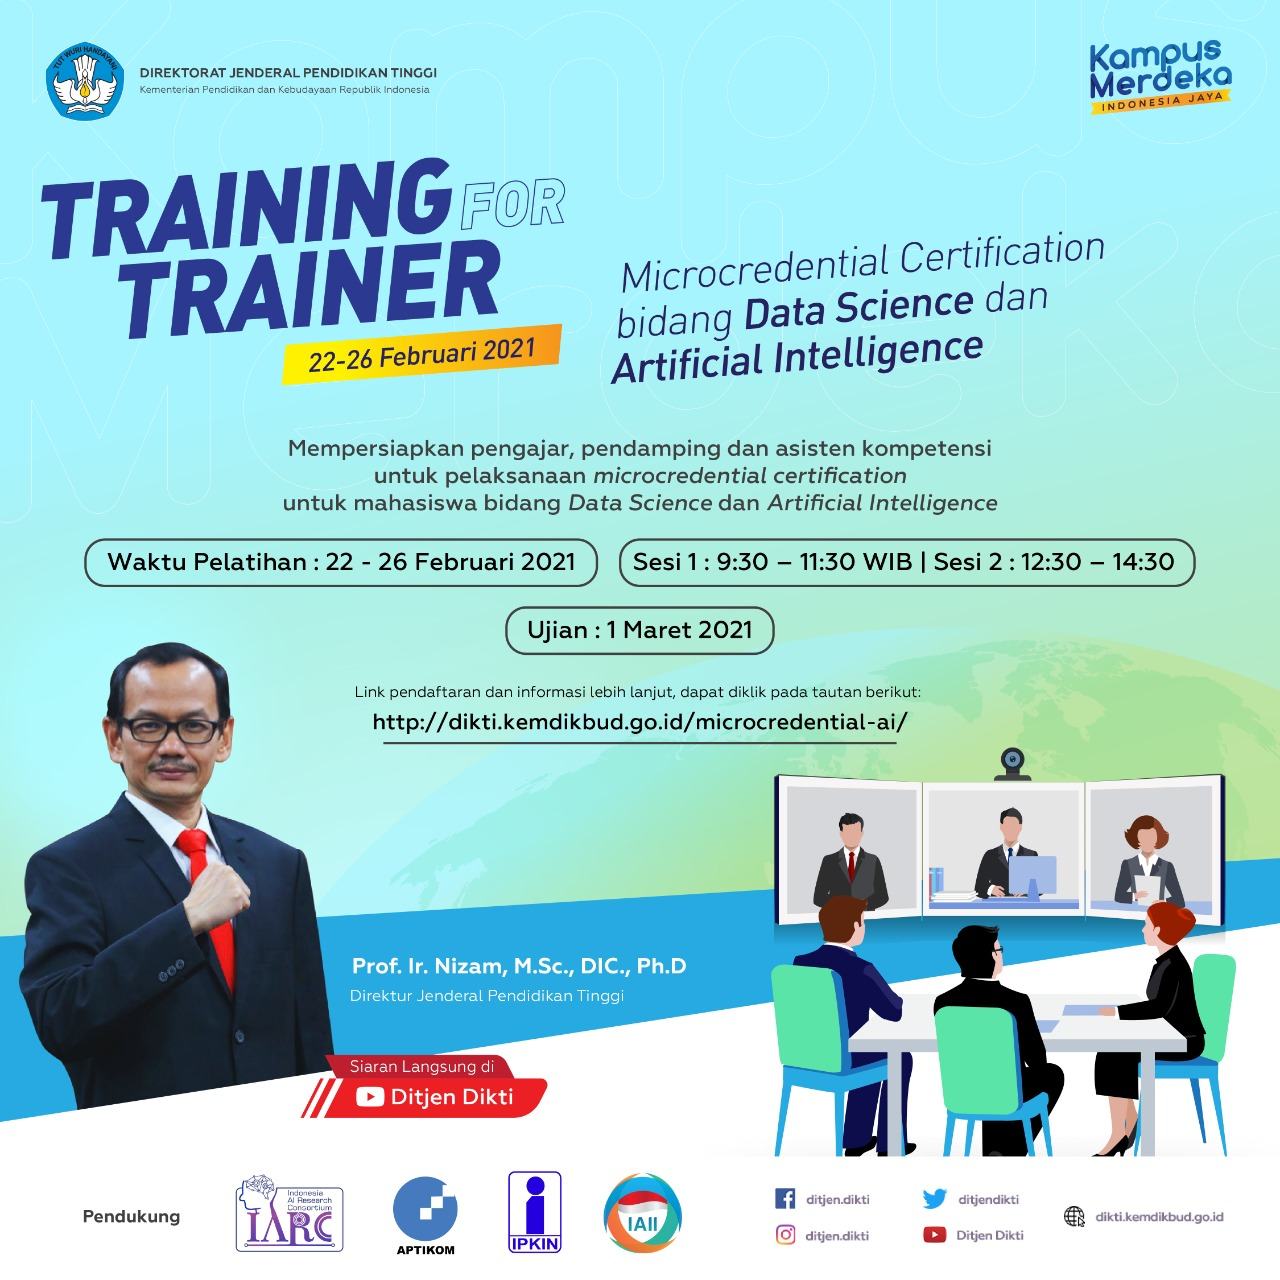 Microcredential Certification